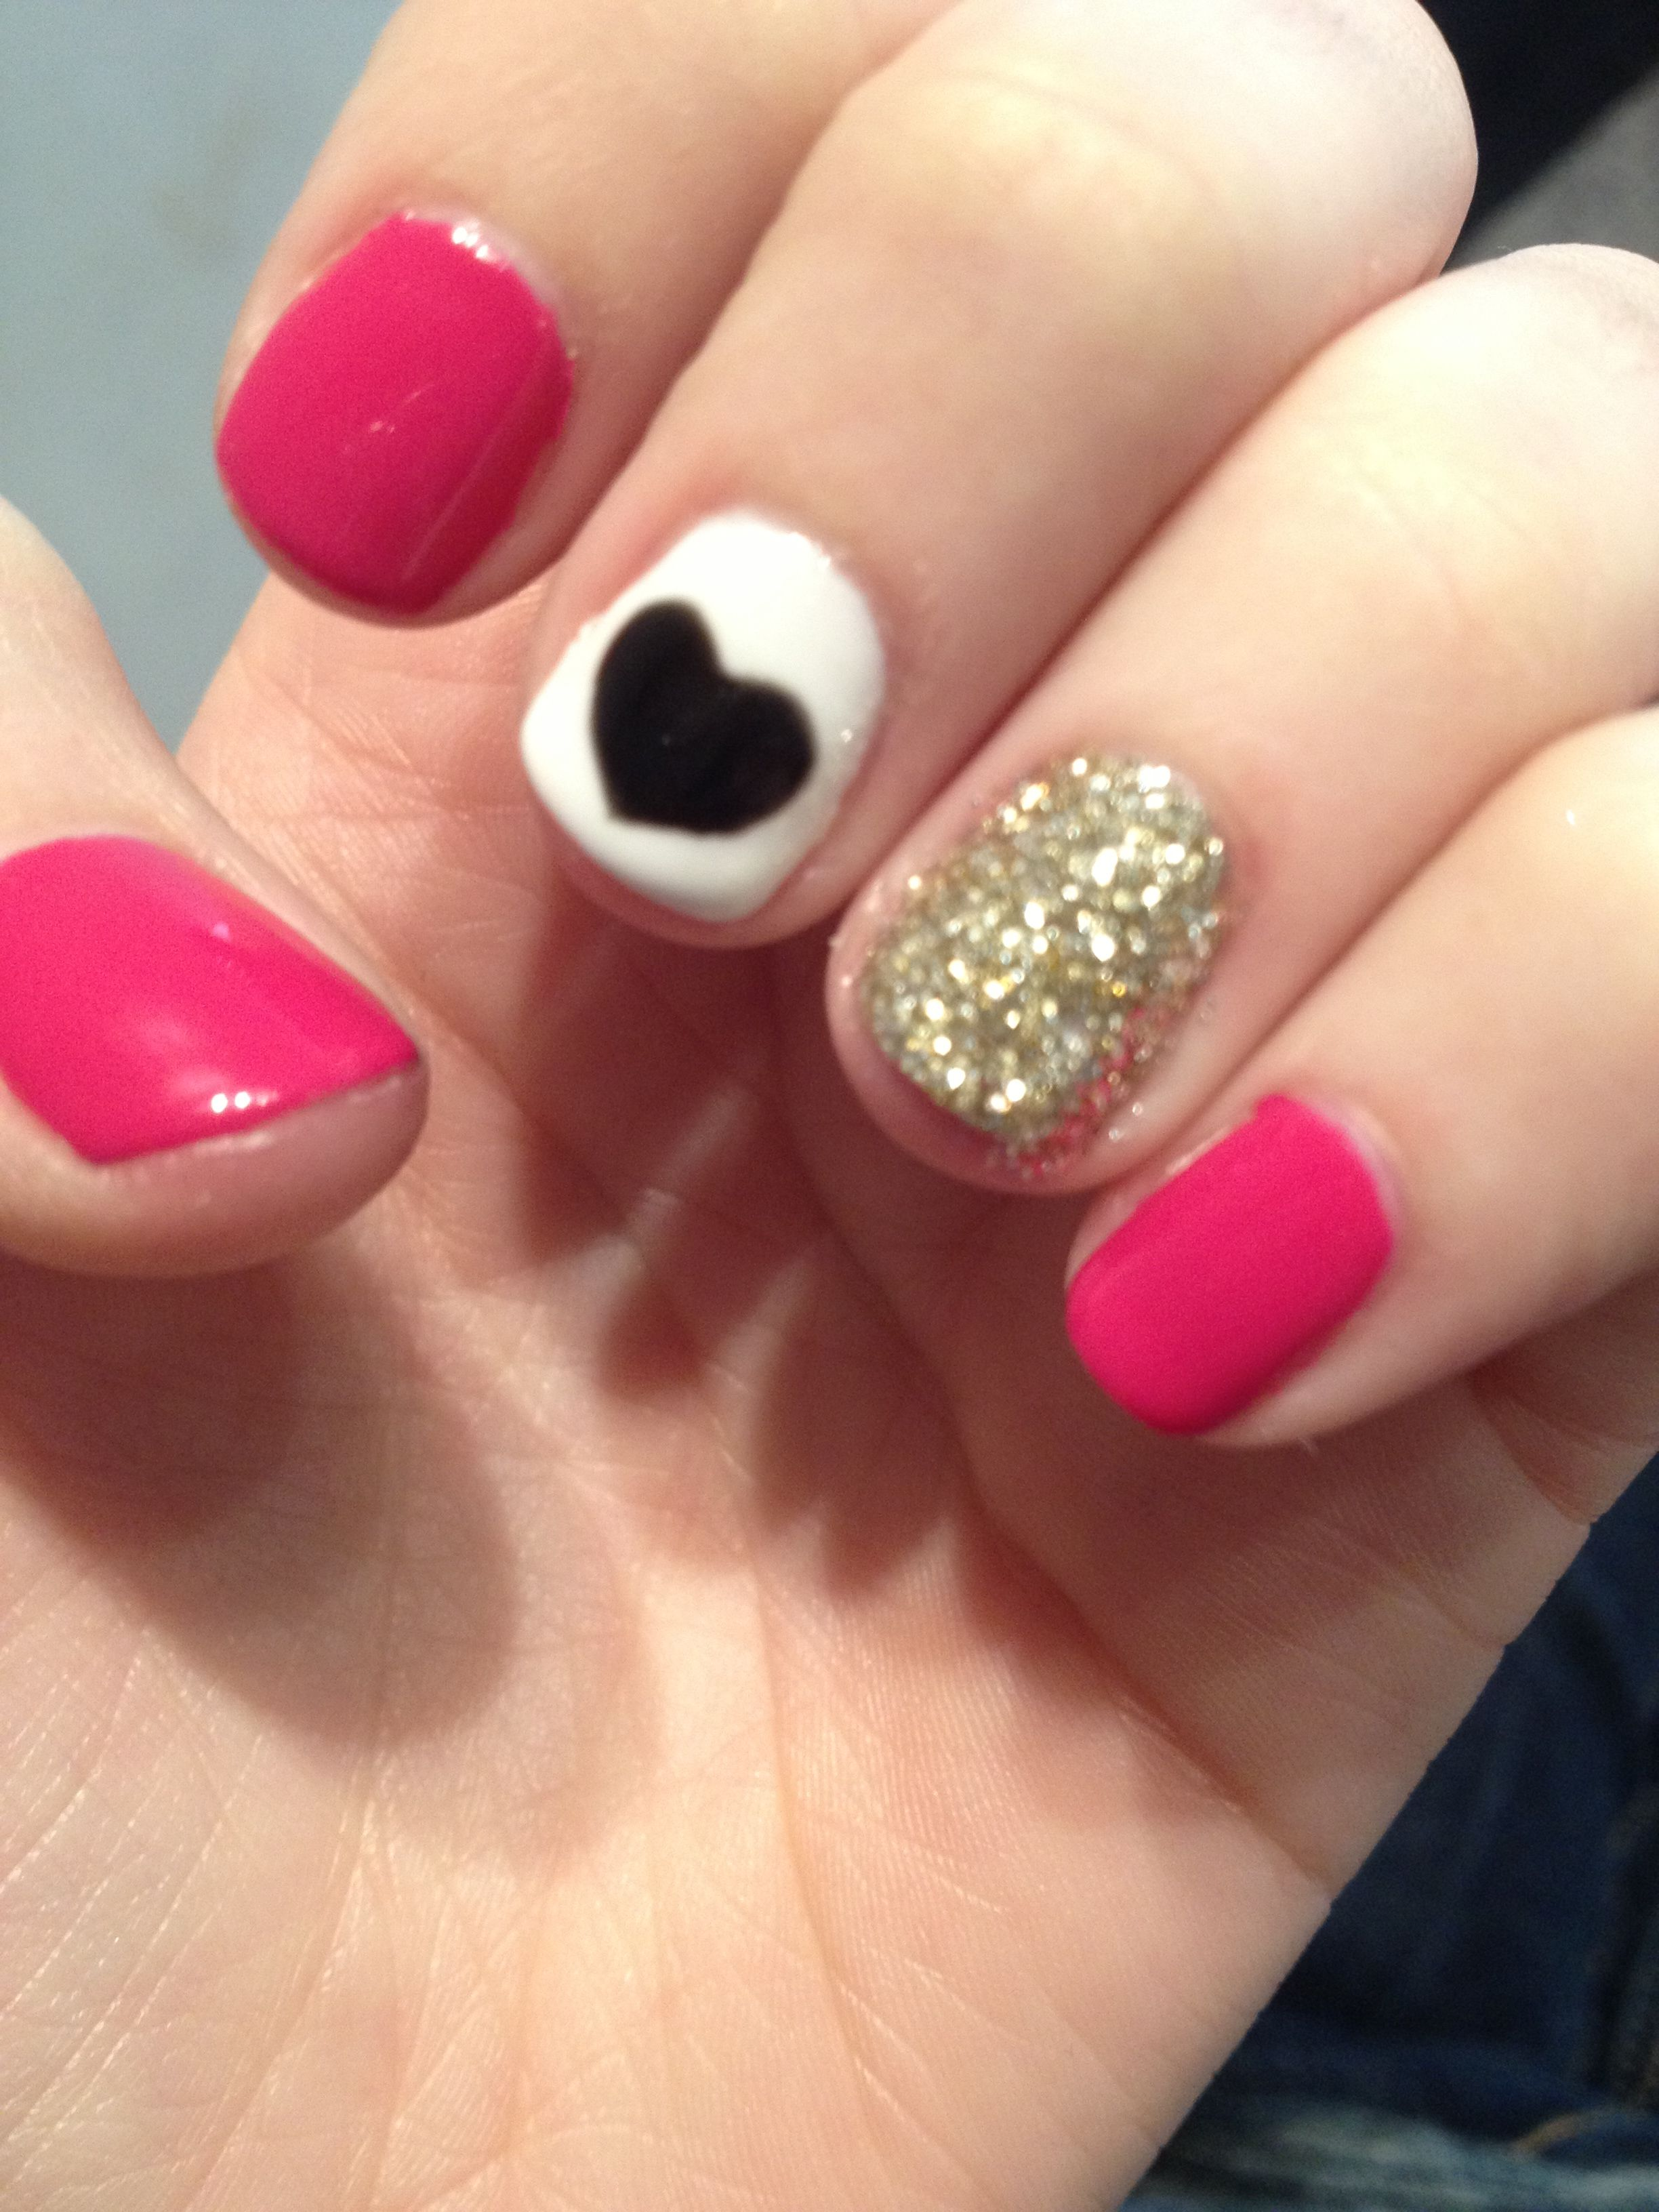 Pin By Jess Ortiz On Nails Nail Art Pink Nails Simple Nails Nails